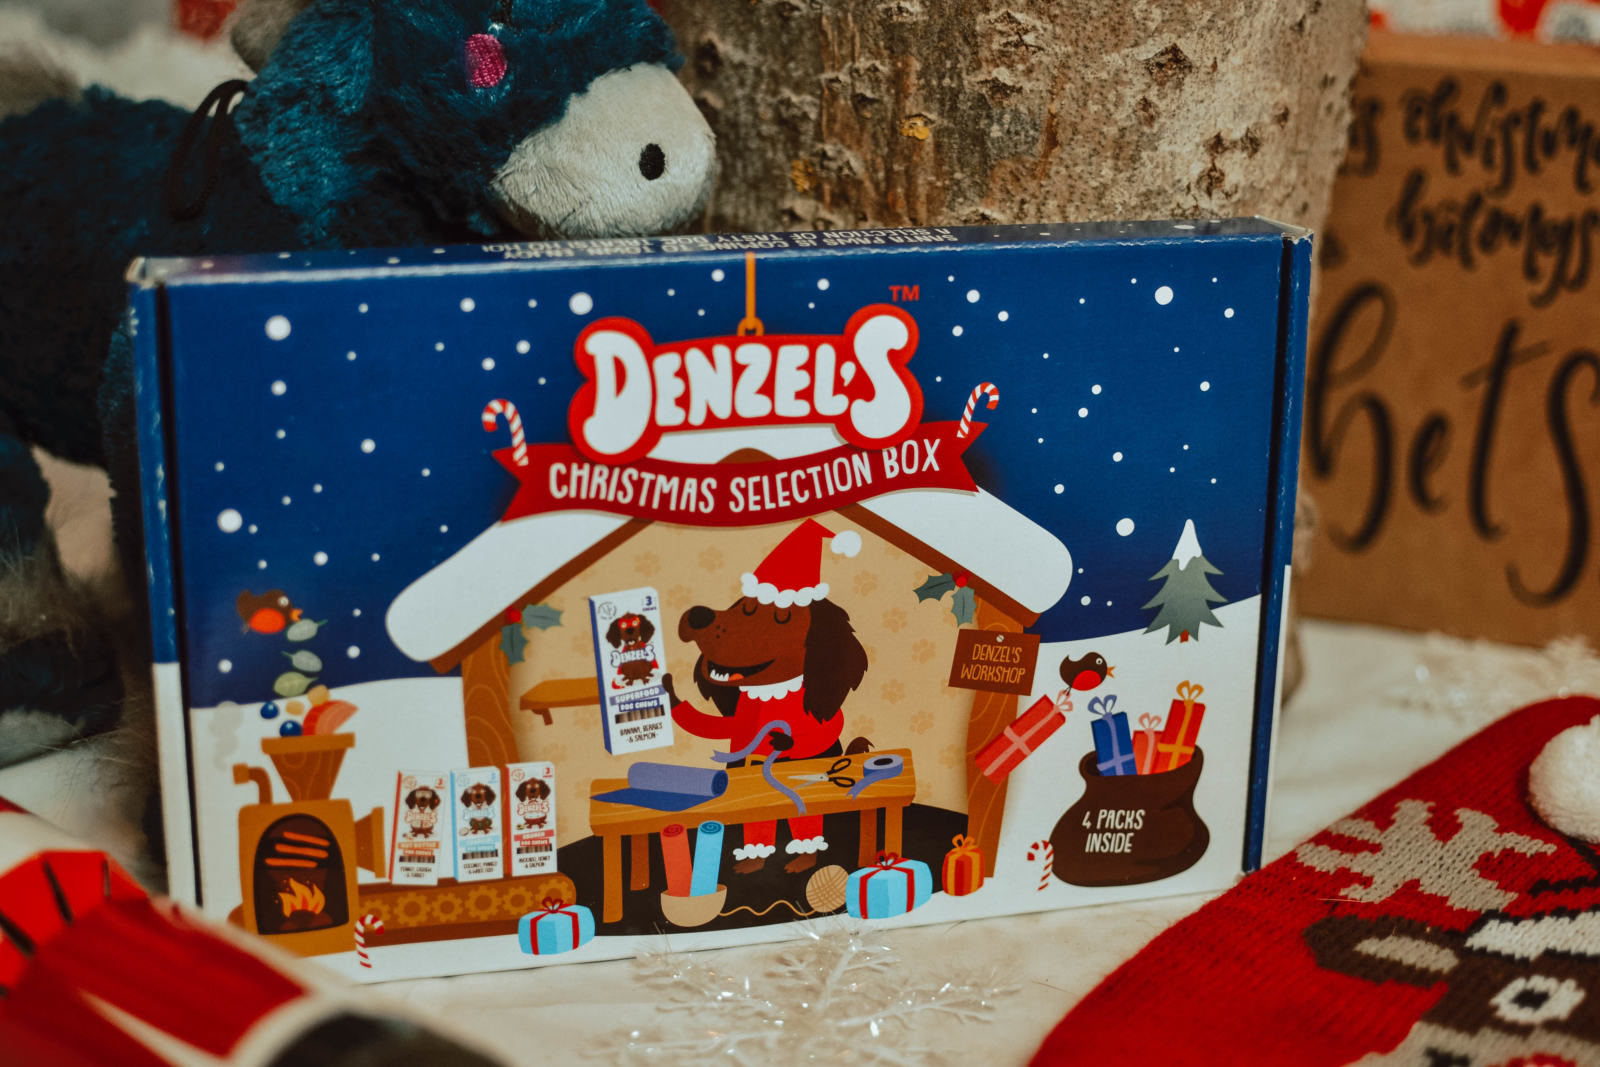 Christmas selection box